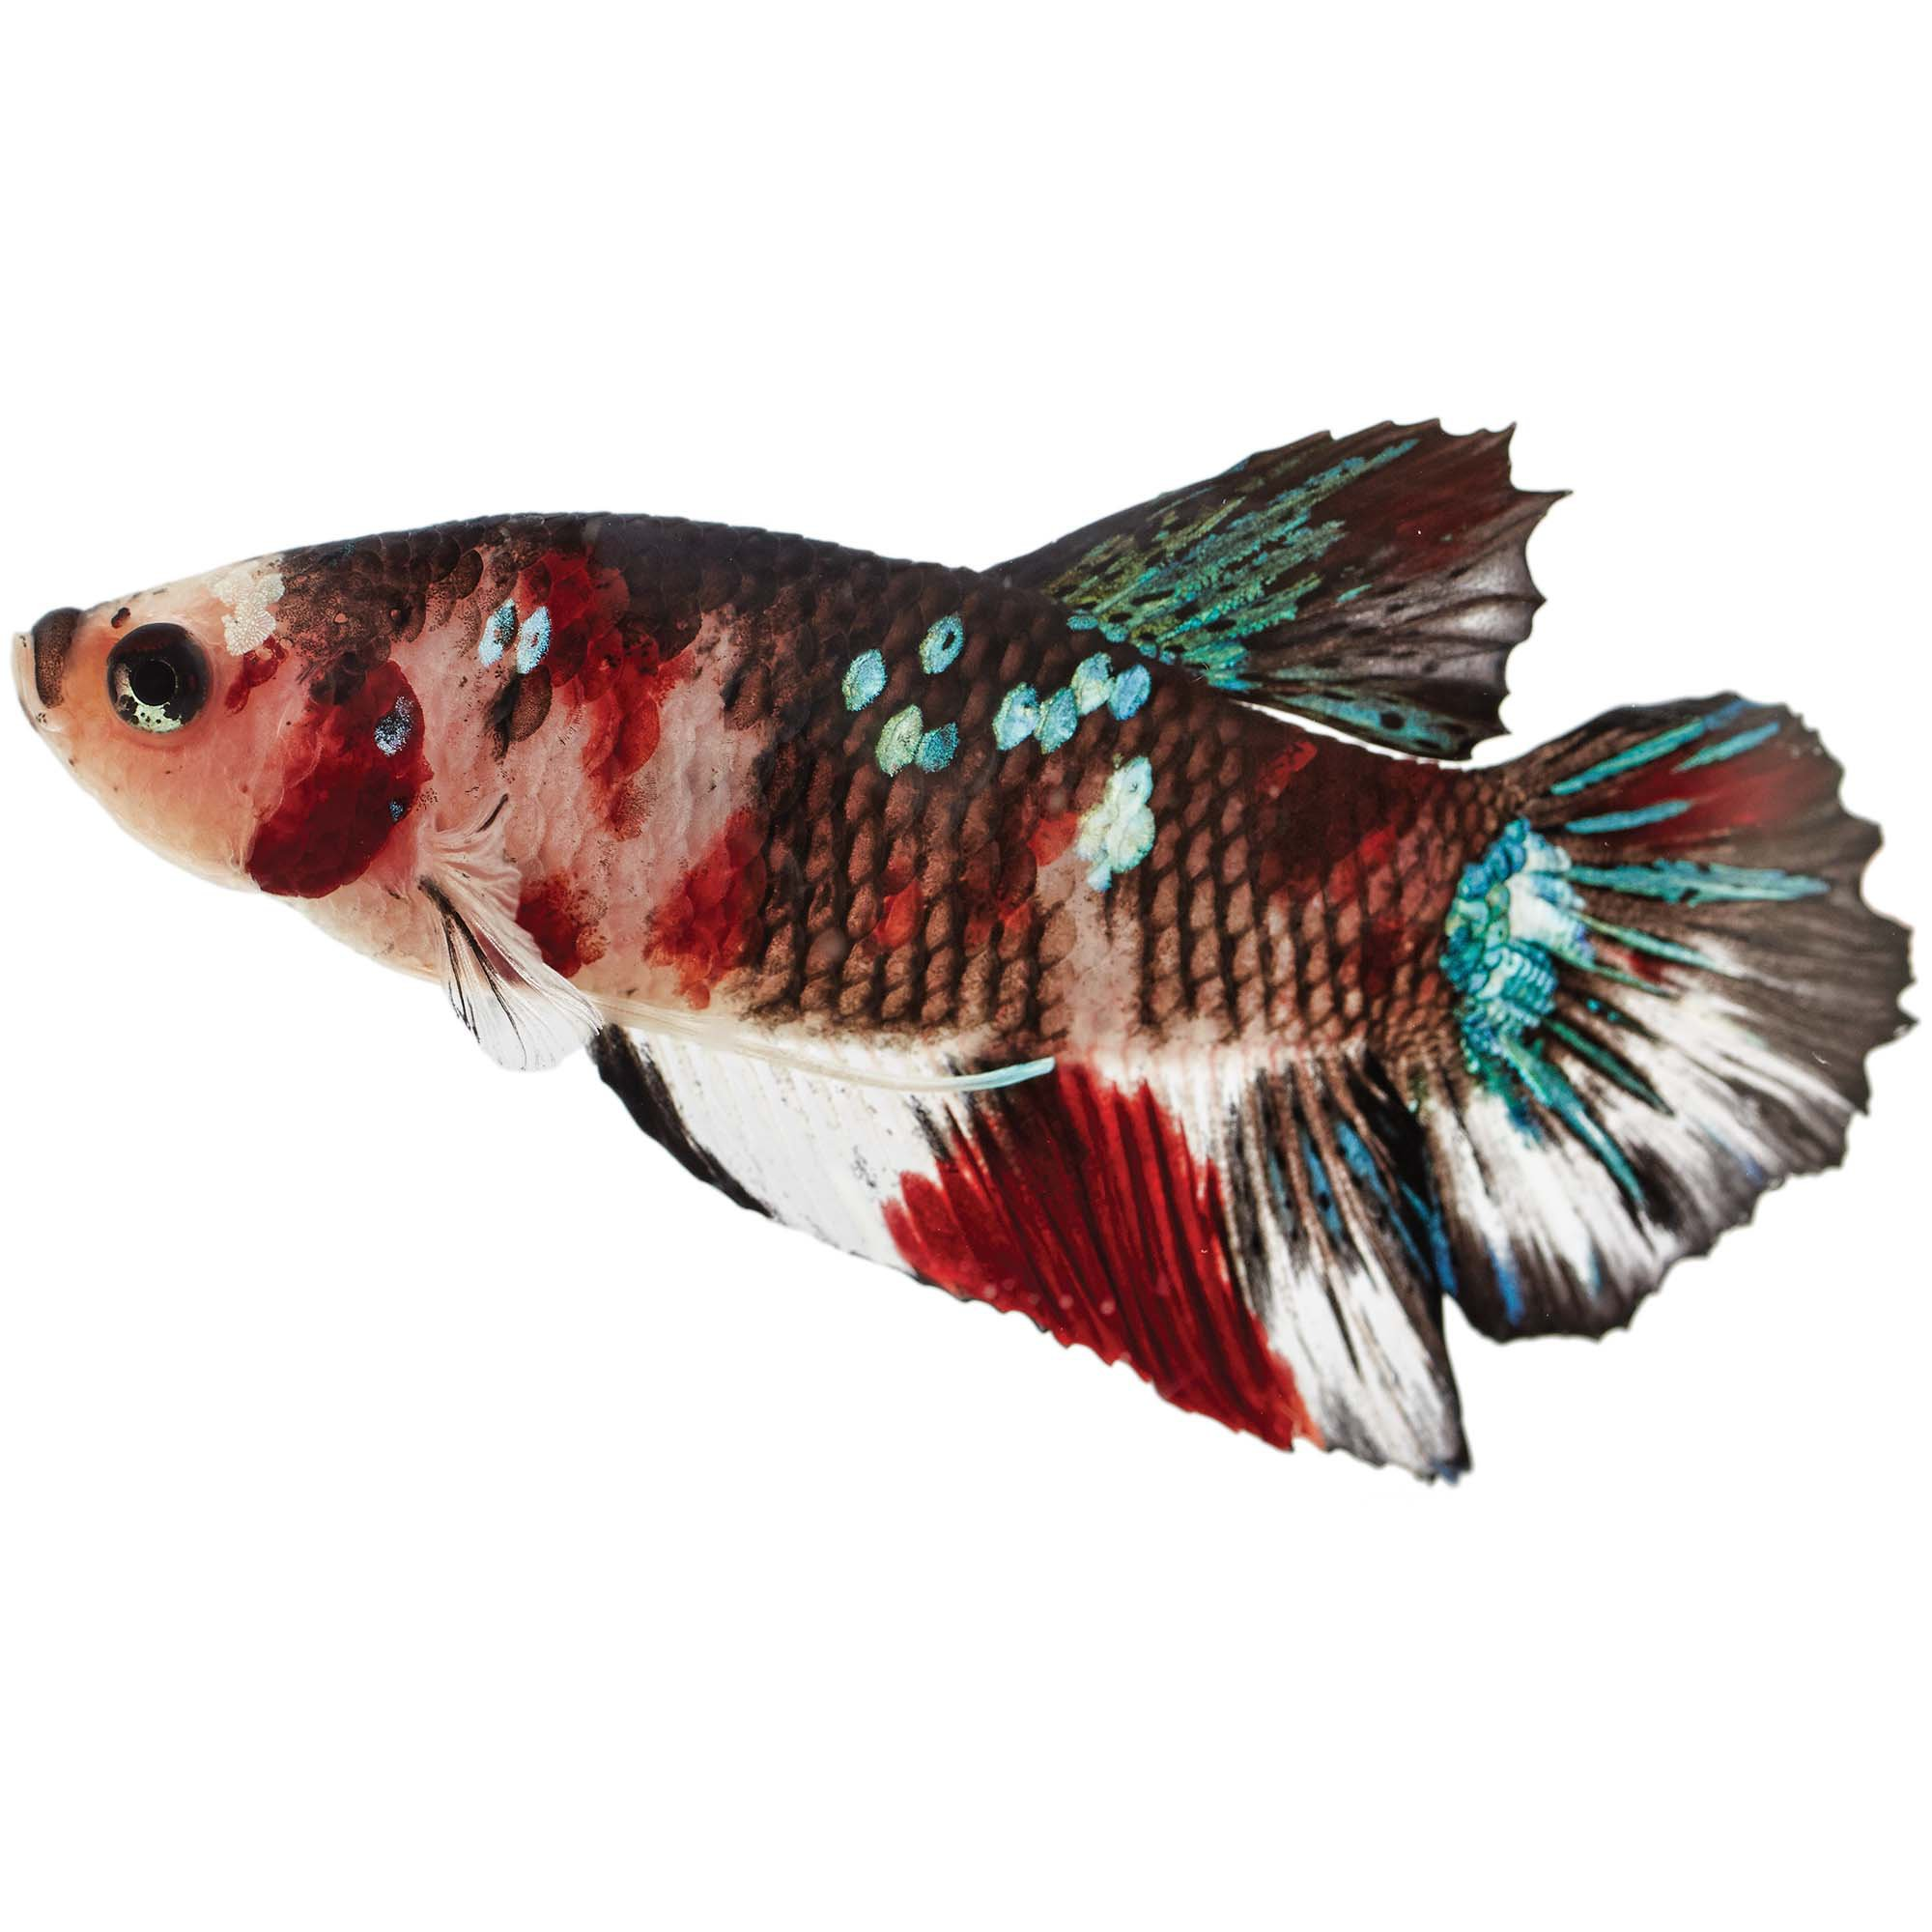 Koi betta petco for Betta fish tanks petco